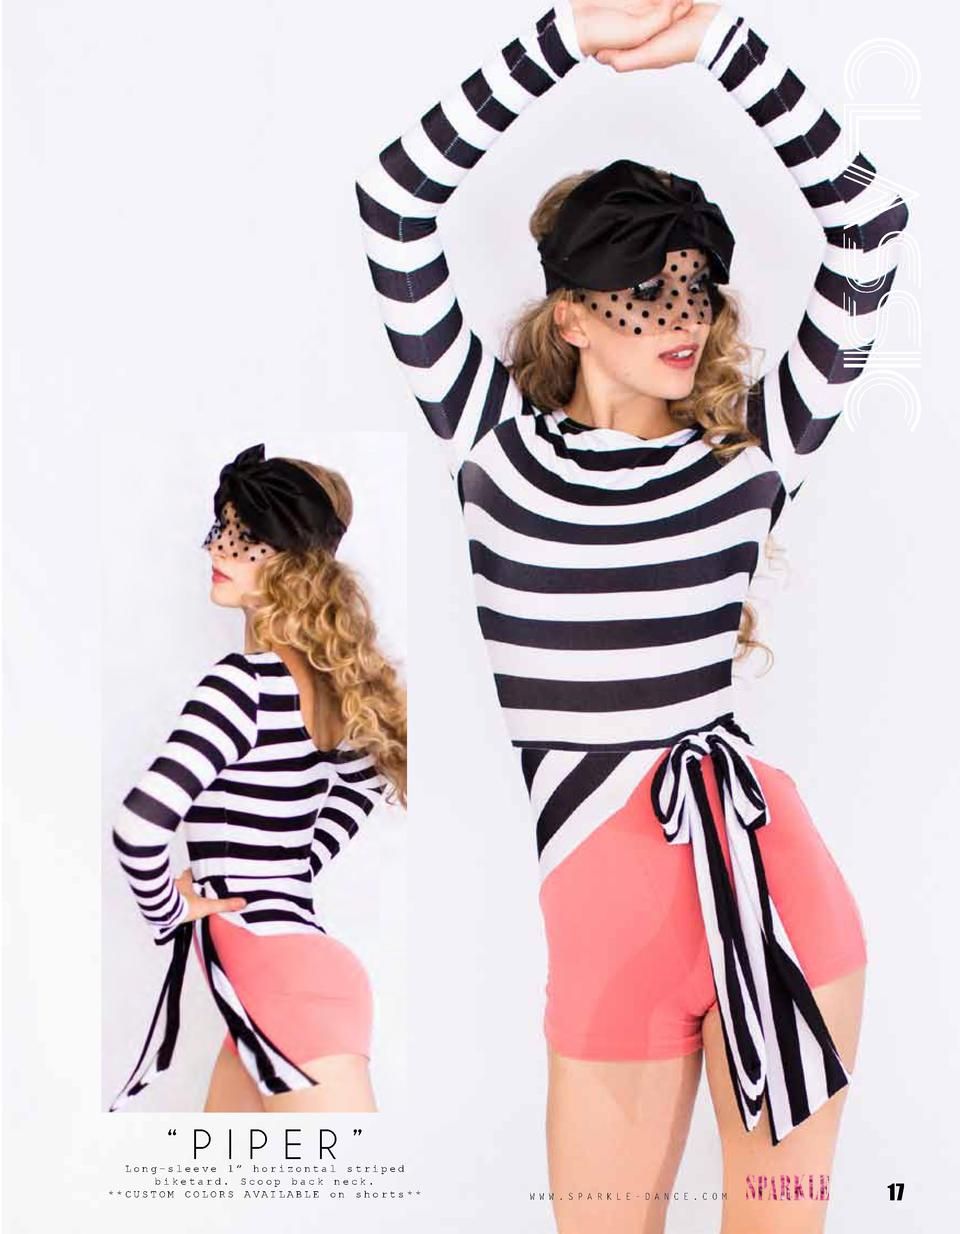 CLASSIC     PIPER     Long-sleeve 1    horizontal striped biketard. Scoop back neck.   CUSTOM COLORS AVAILABLE on shorts  ...